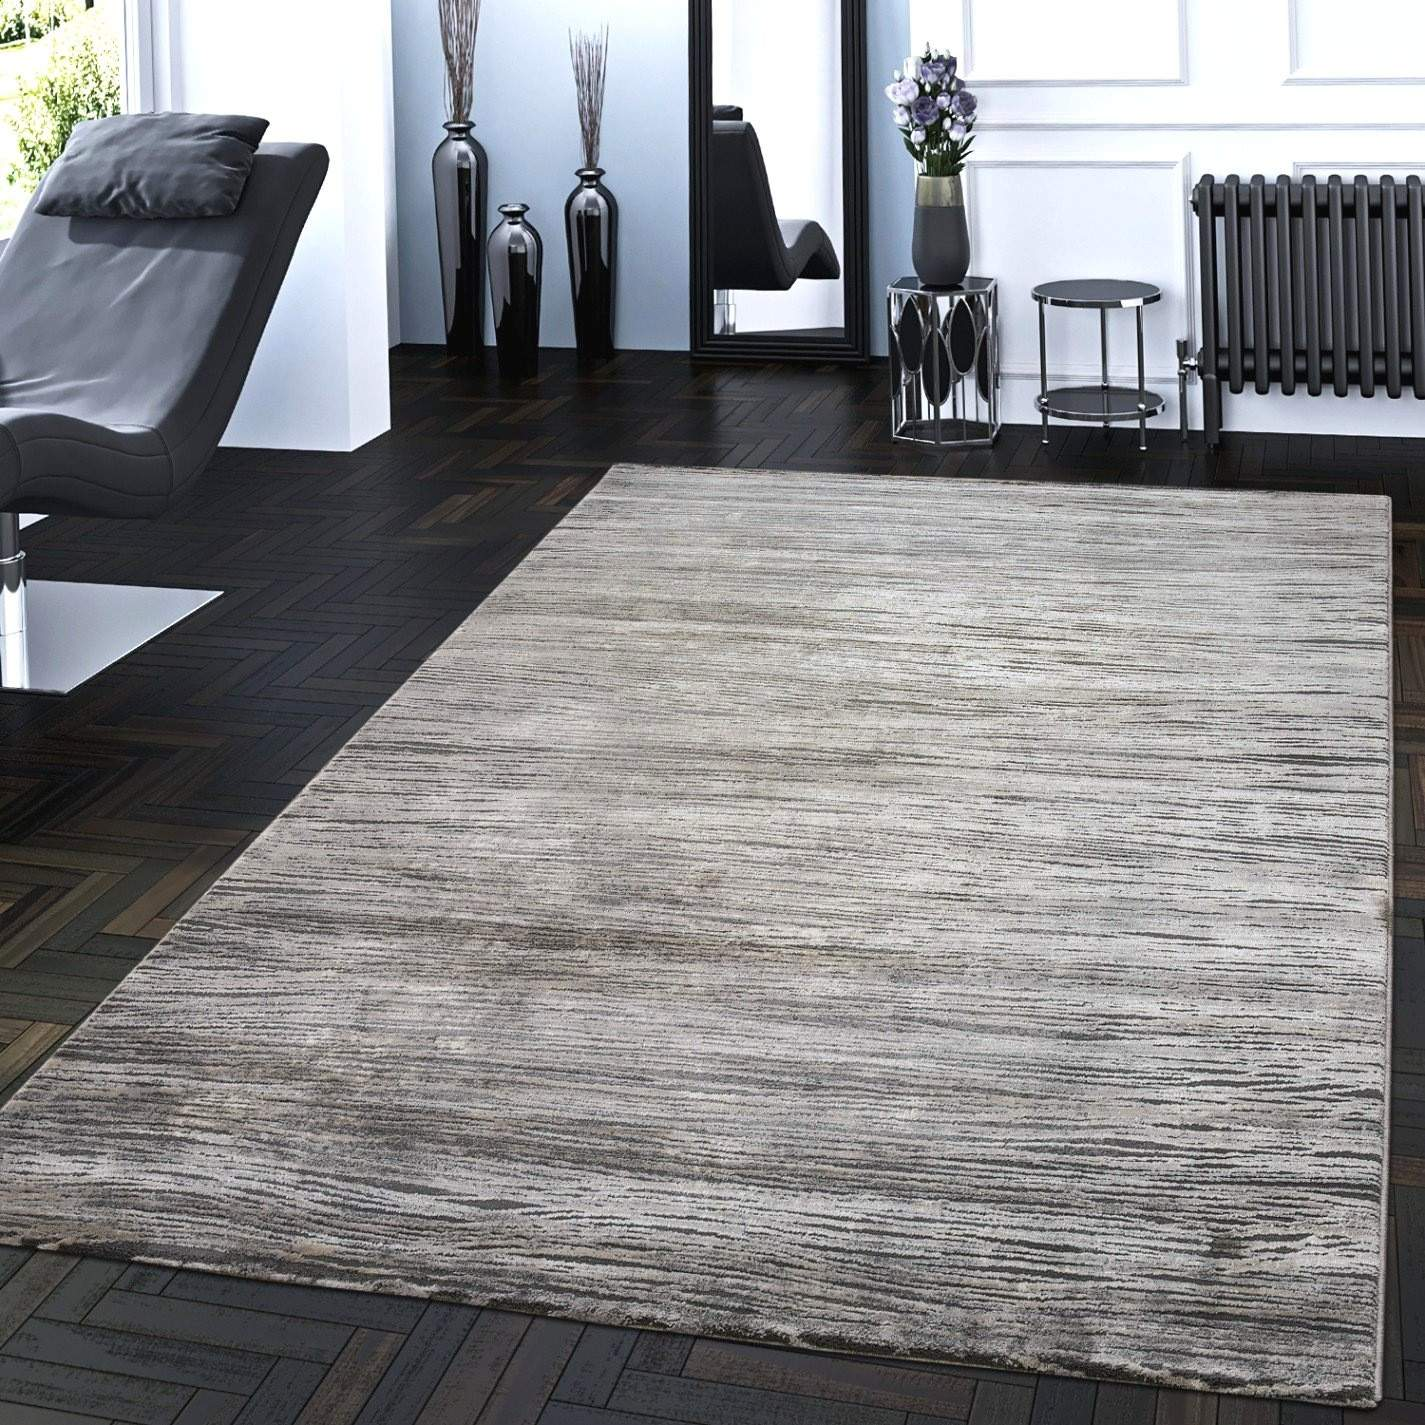 gray hardwood floor colors of grey wood laminate flooring unique unique light tile that looks like intended for grey wood laminate flooring fresh shabby chic teppich ebenso gut wie groac29fa